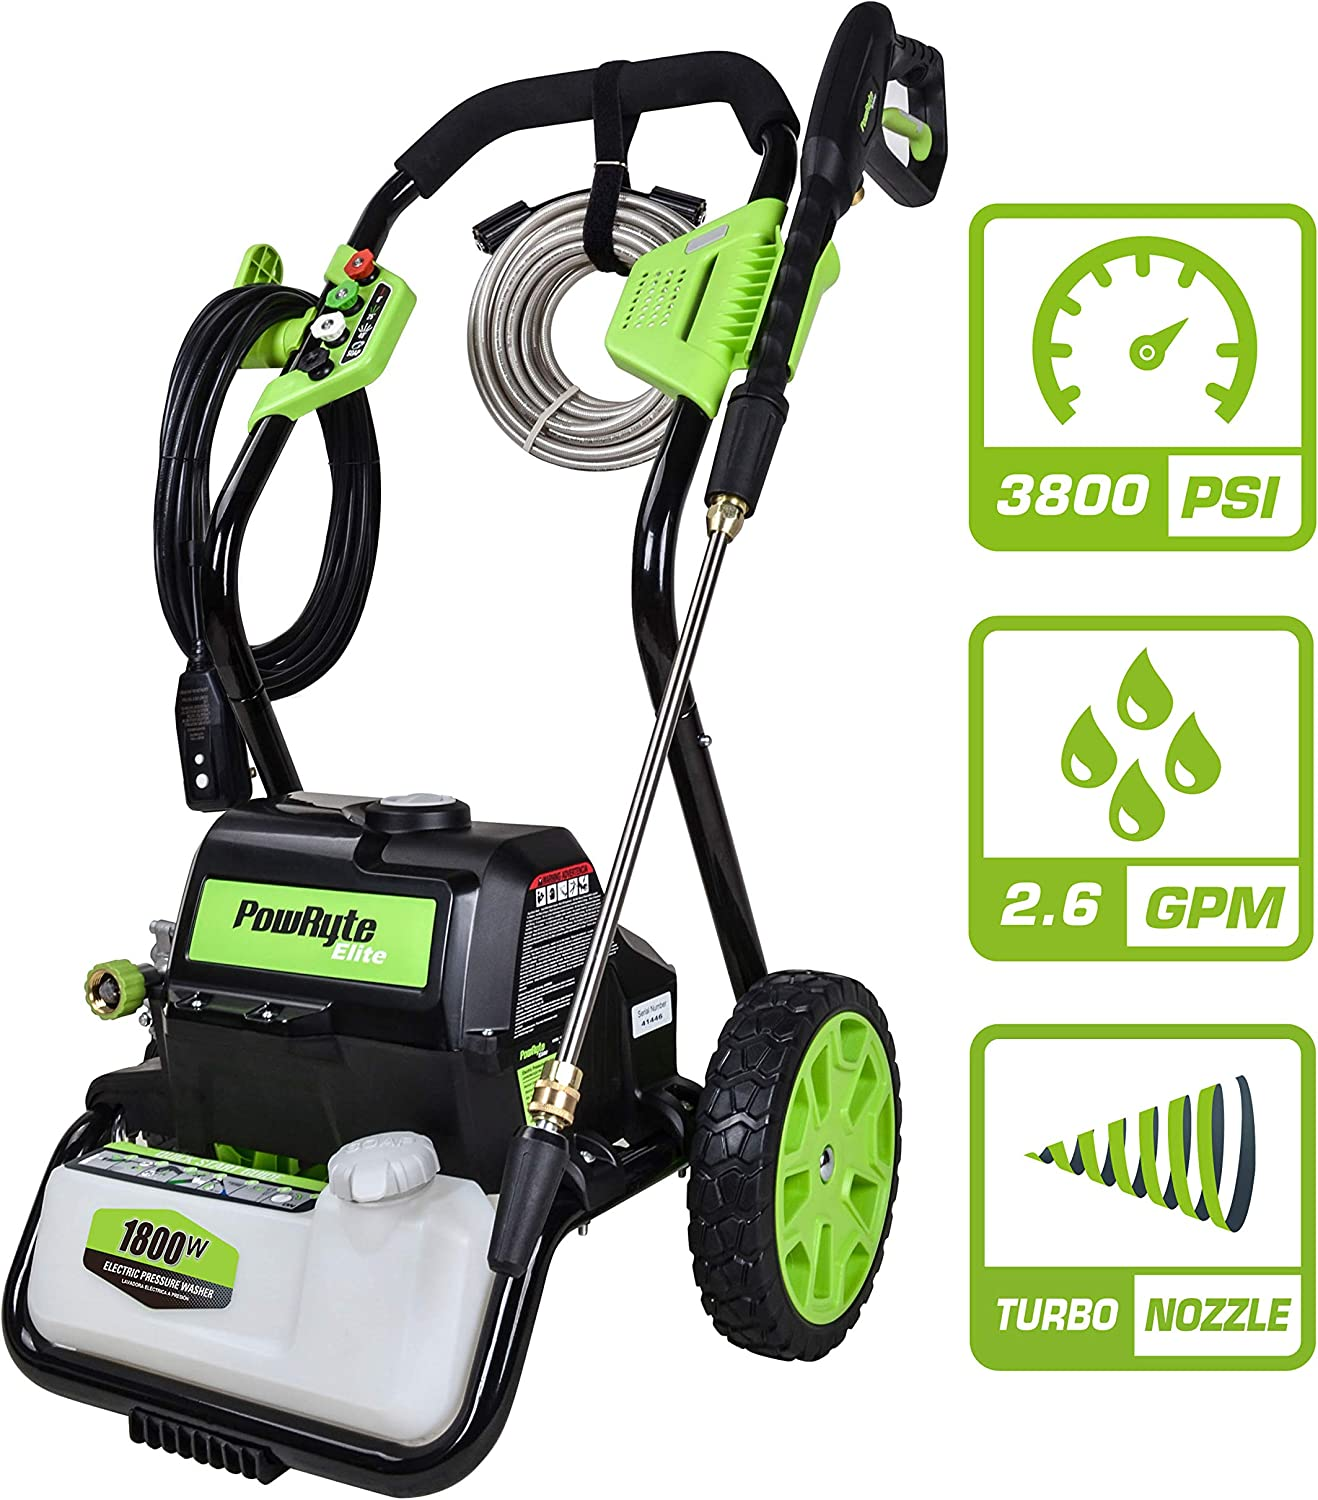 PowRyte Elite 3800 PSI 2.60 GPM Electric Pressure Washer, Electric Power Washer with 5 Piece Quick-Connect Spray Tips and 1Pc Turbo Nozzle